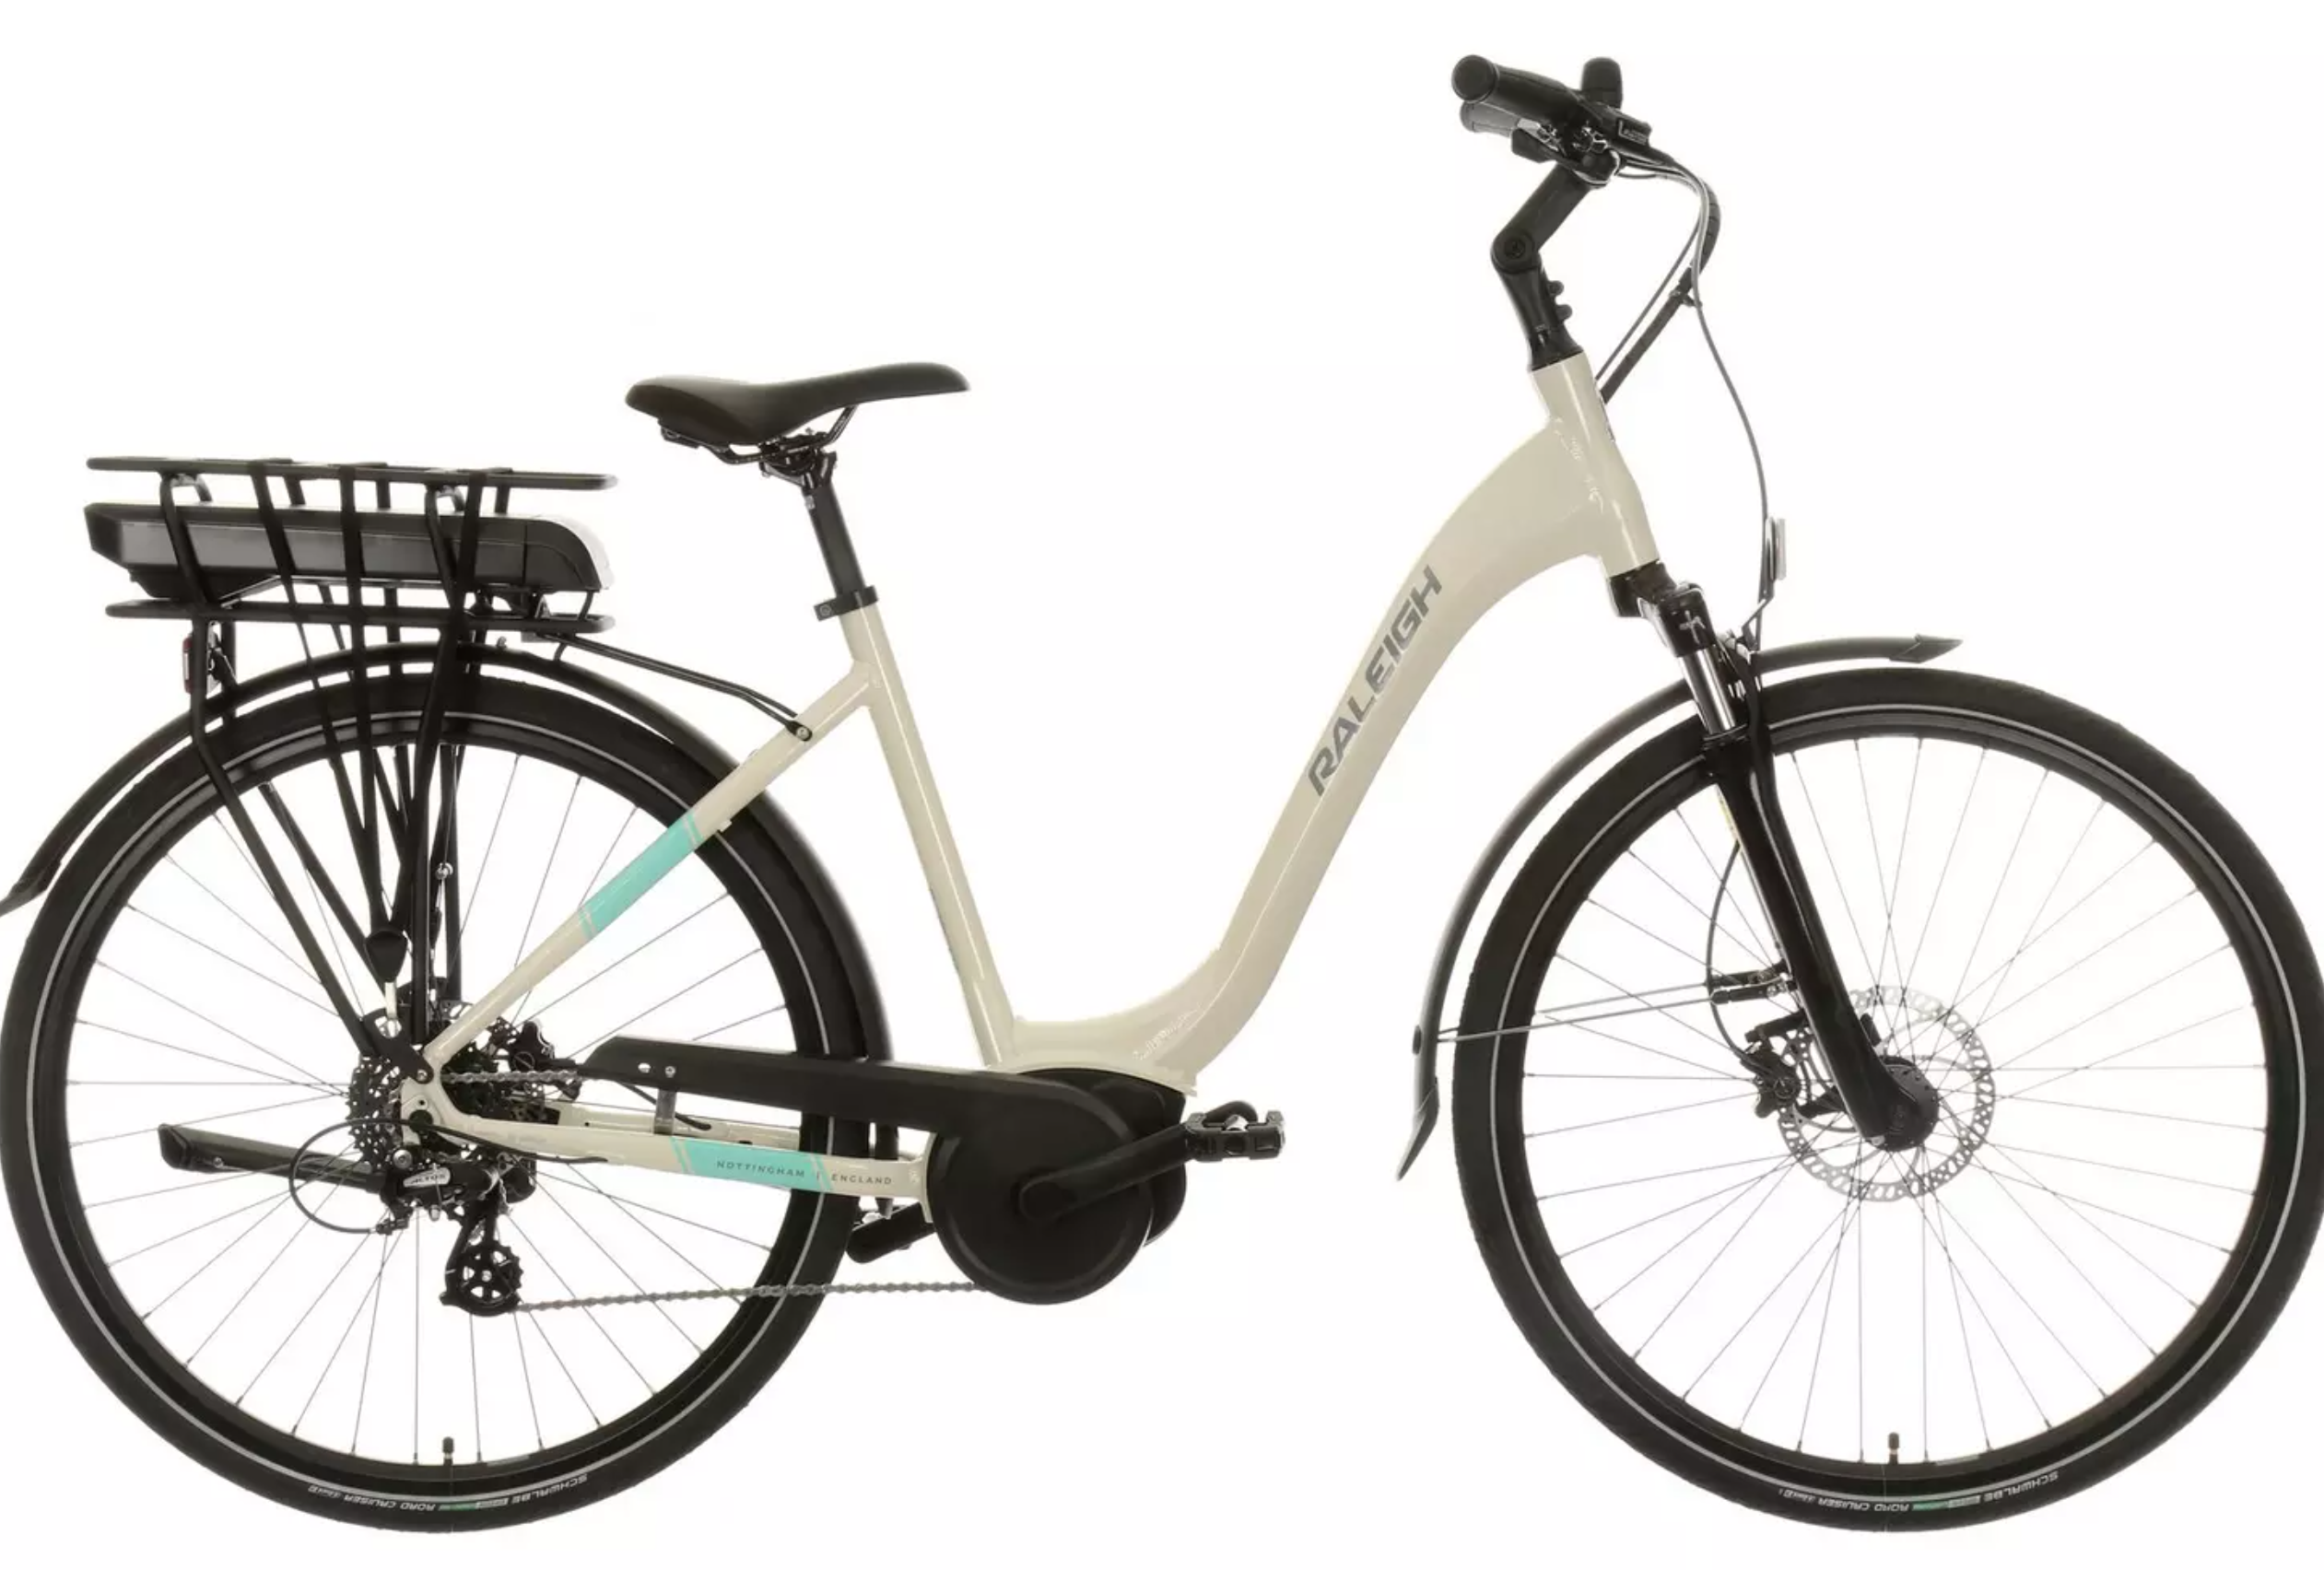 A typical E-Bike